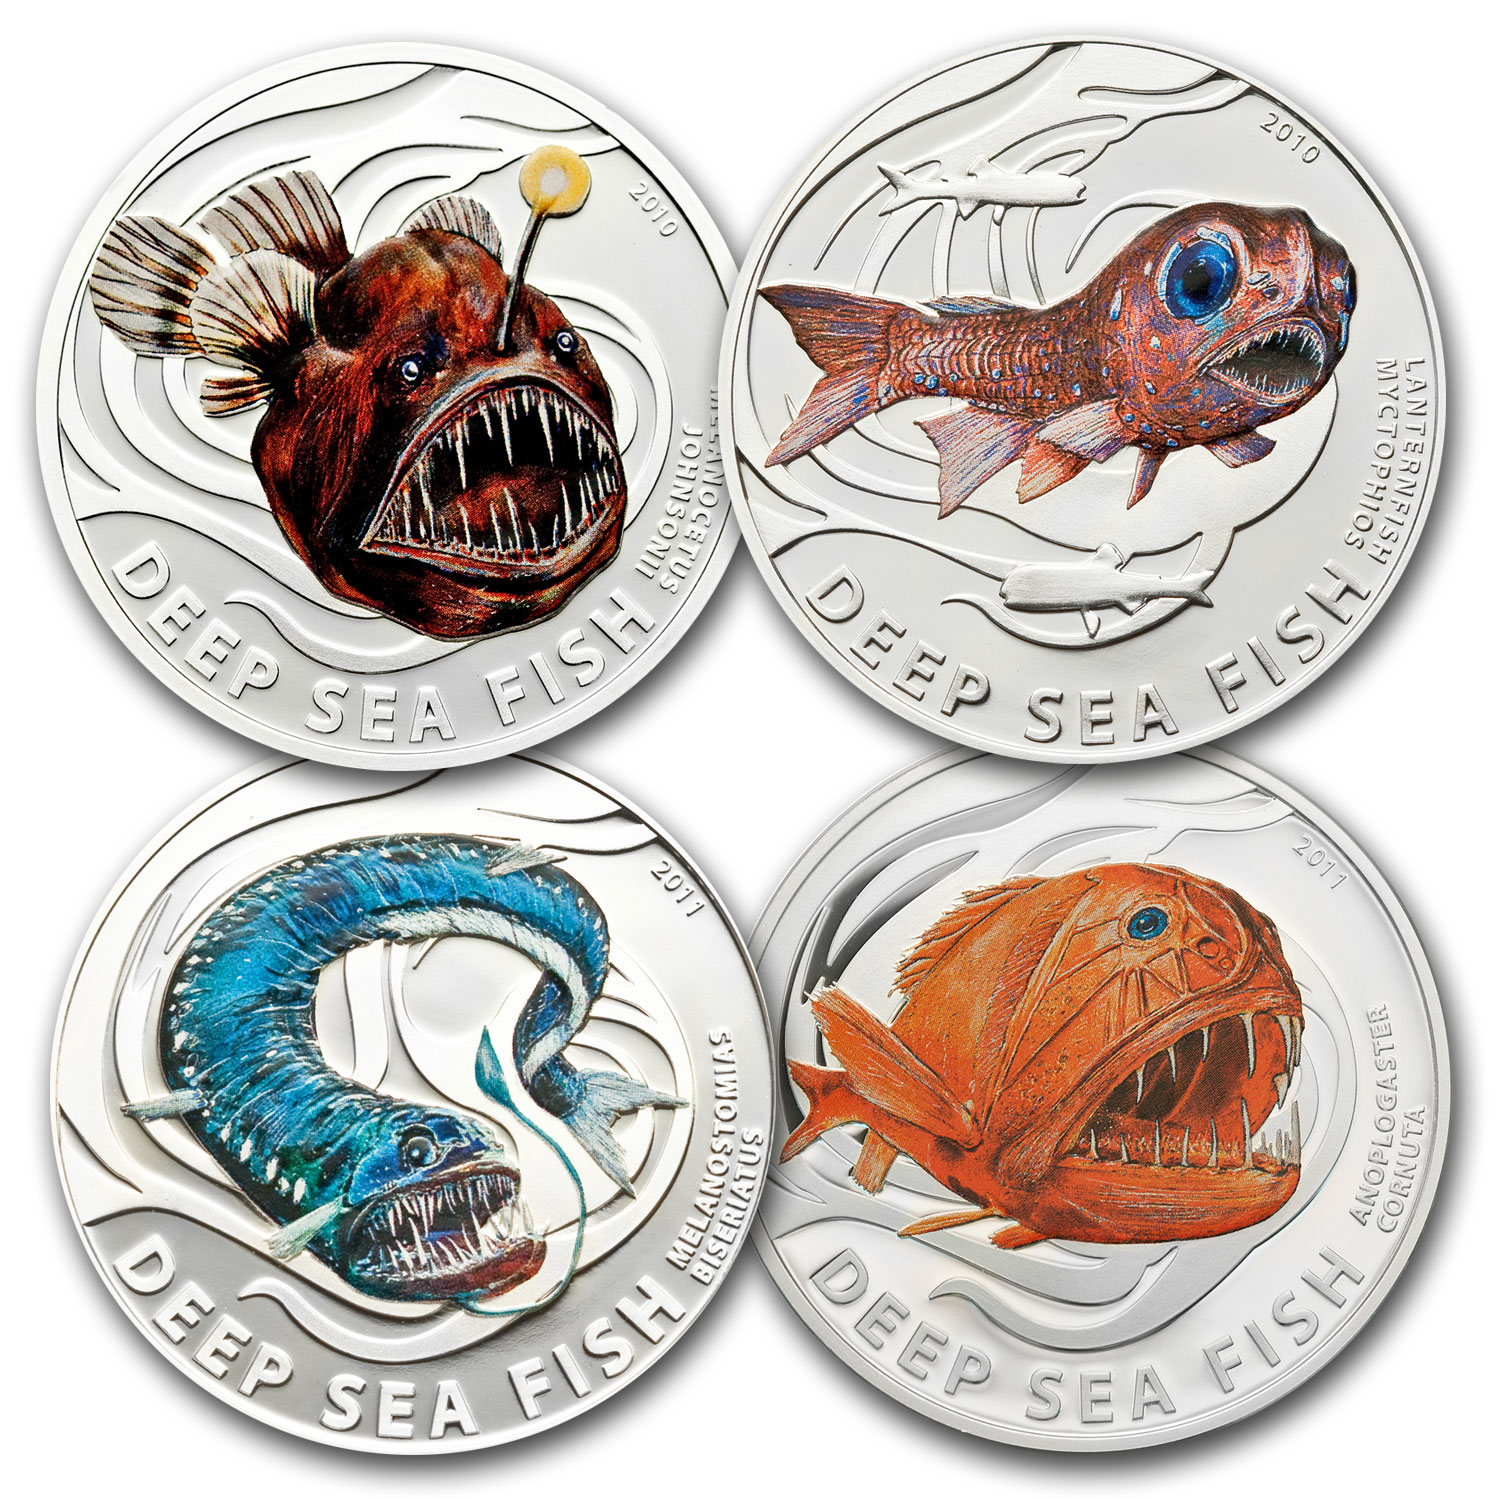 2010-2011 Pitcairn Islands 4-Coin Silver Deep Sea Fish Proof Set